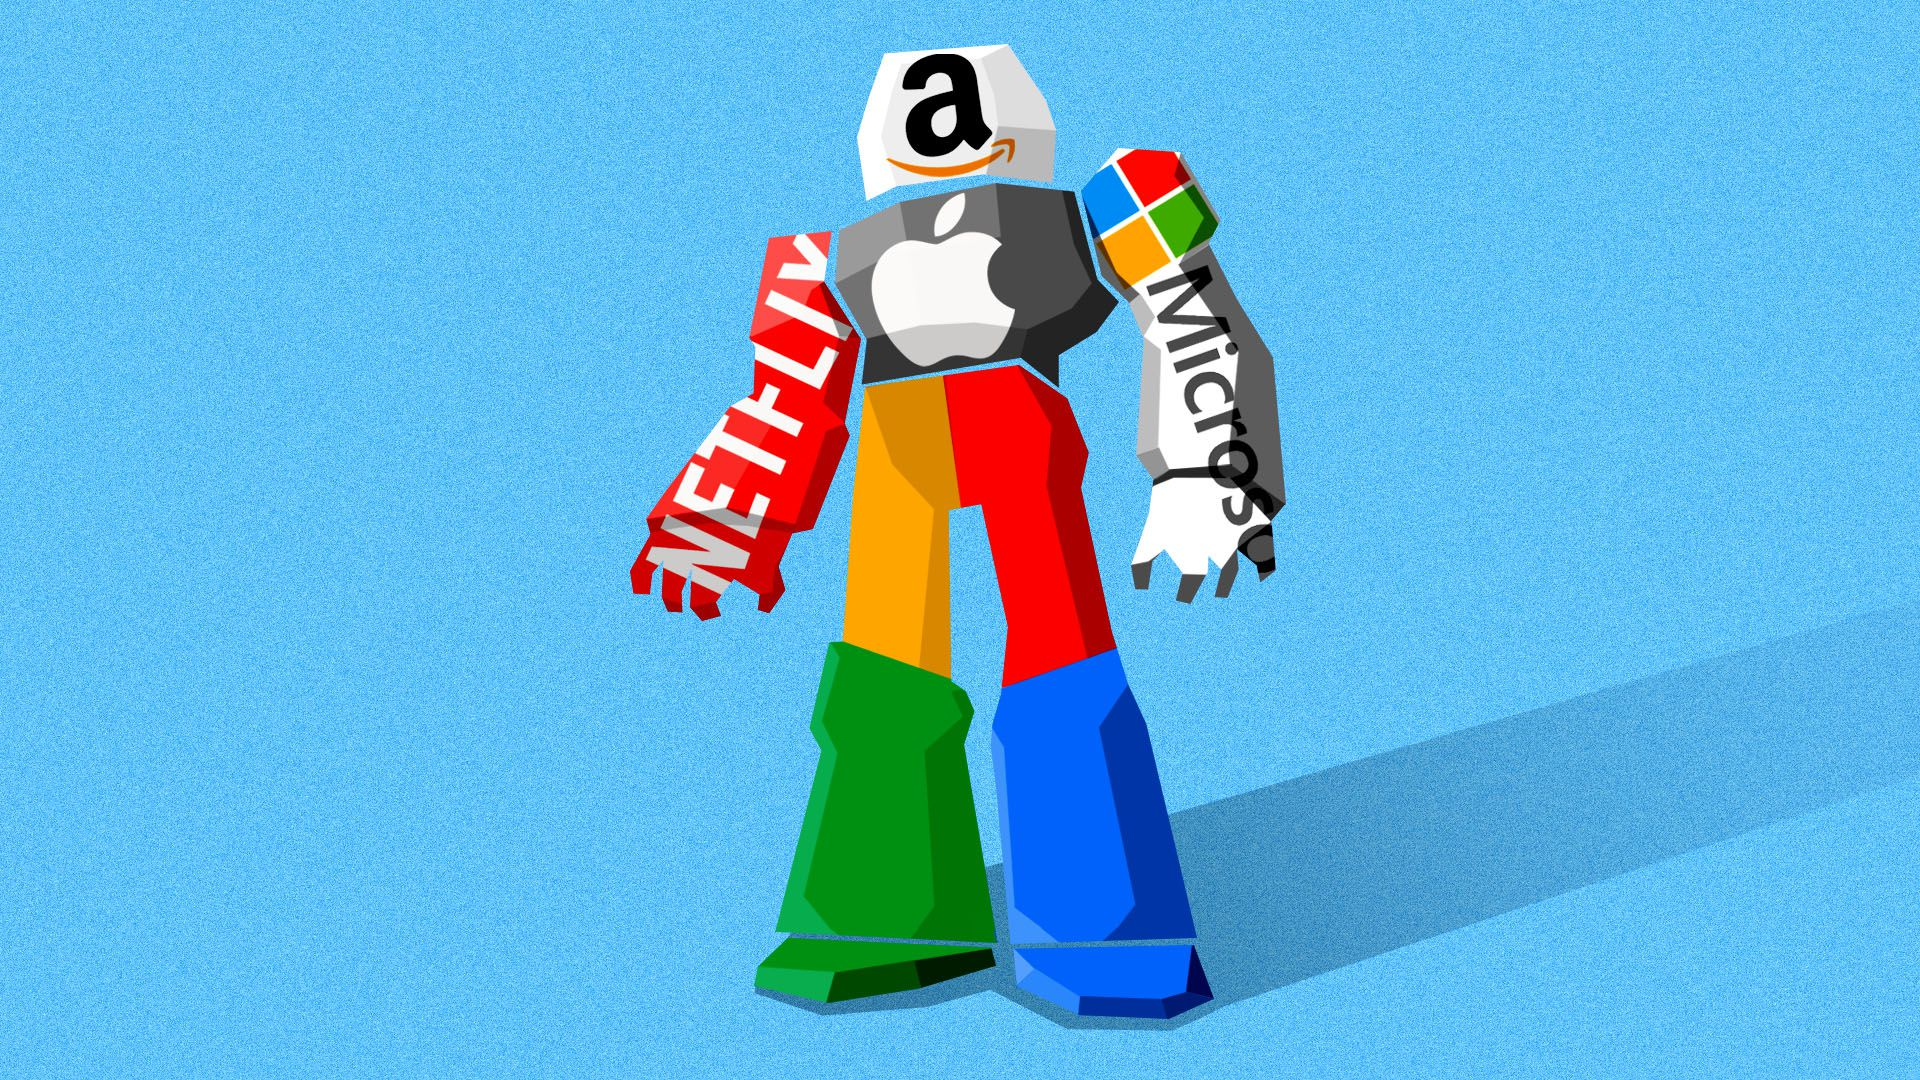 illustration of a giant robot made up of big tech company logos